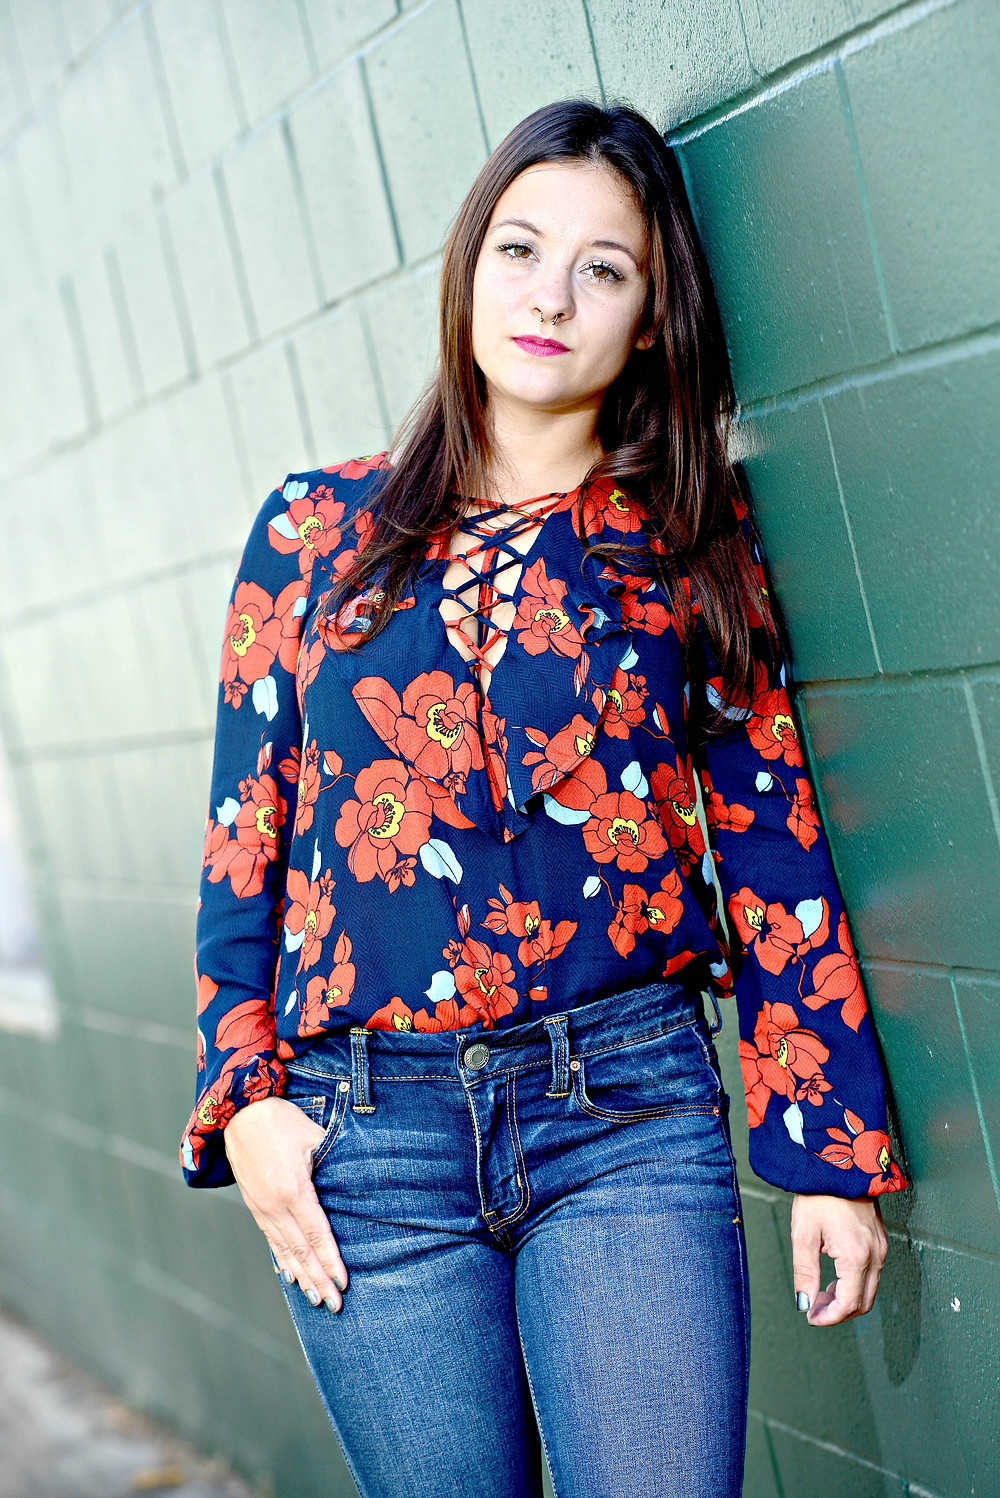 A style blogger wears a floral lace-up blouse from Forever 21.